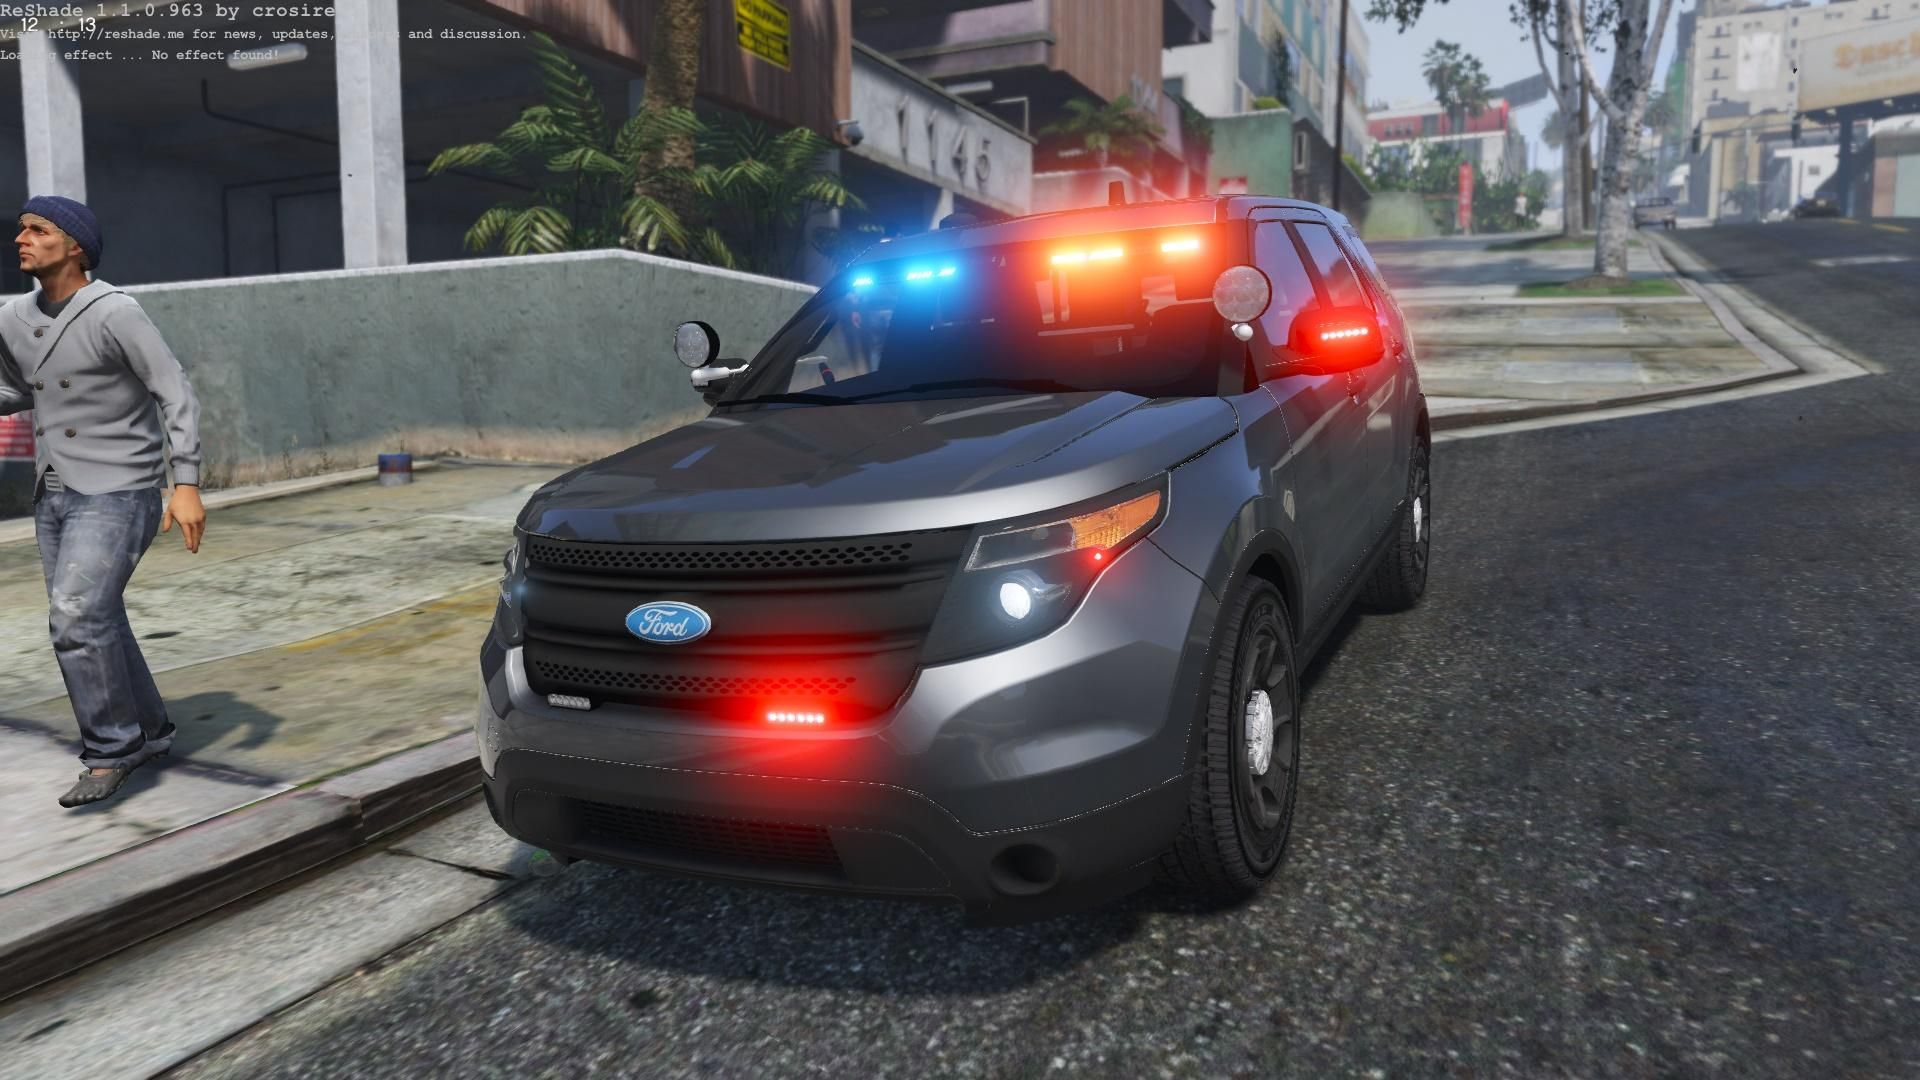 Gta5 Fpiu Lapd Ford Explorer Emergency Vehicles Police Cars